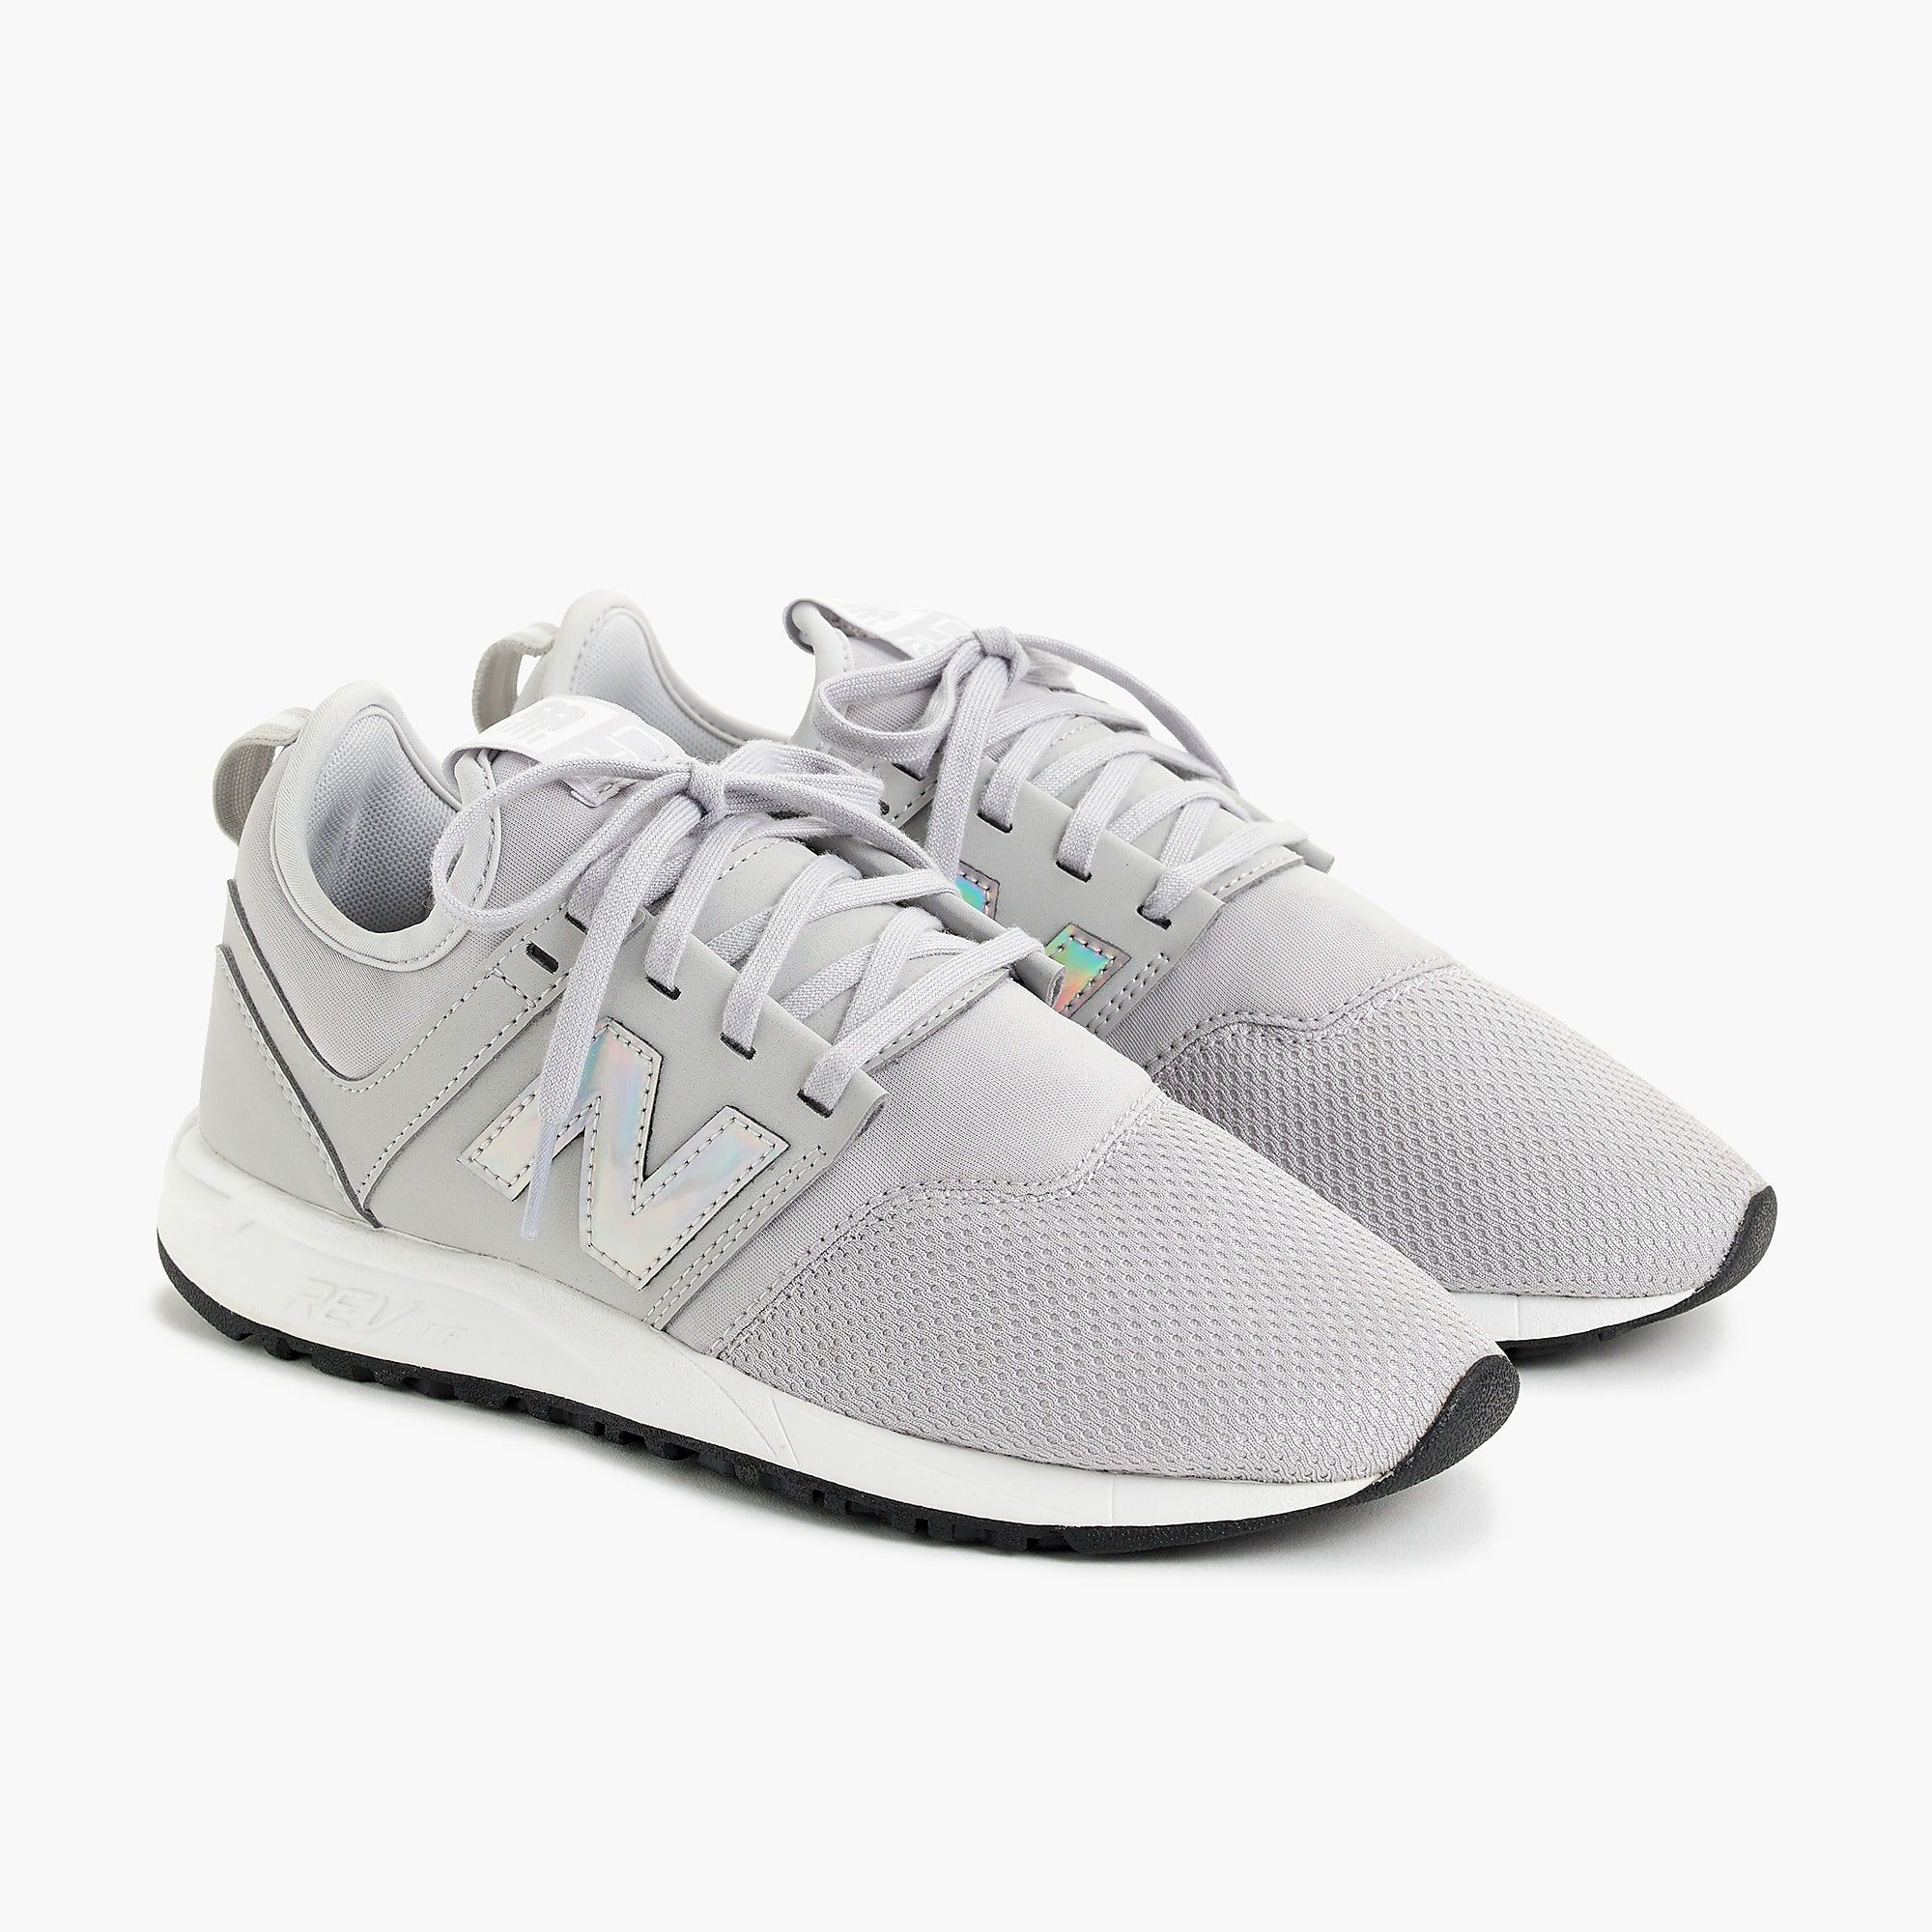 Women s Women S New Balance® For J.Crew 247 Sneakers - Women s Footwear  d809de407